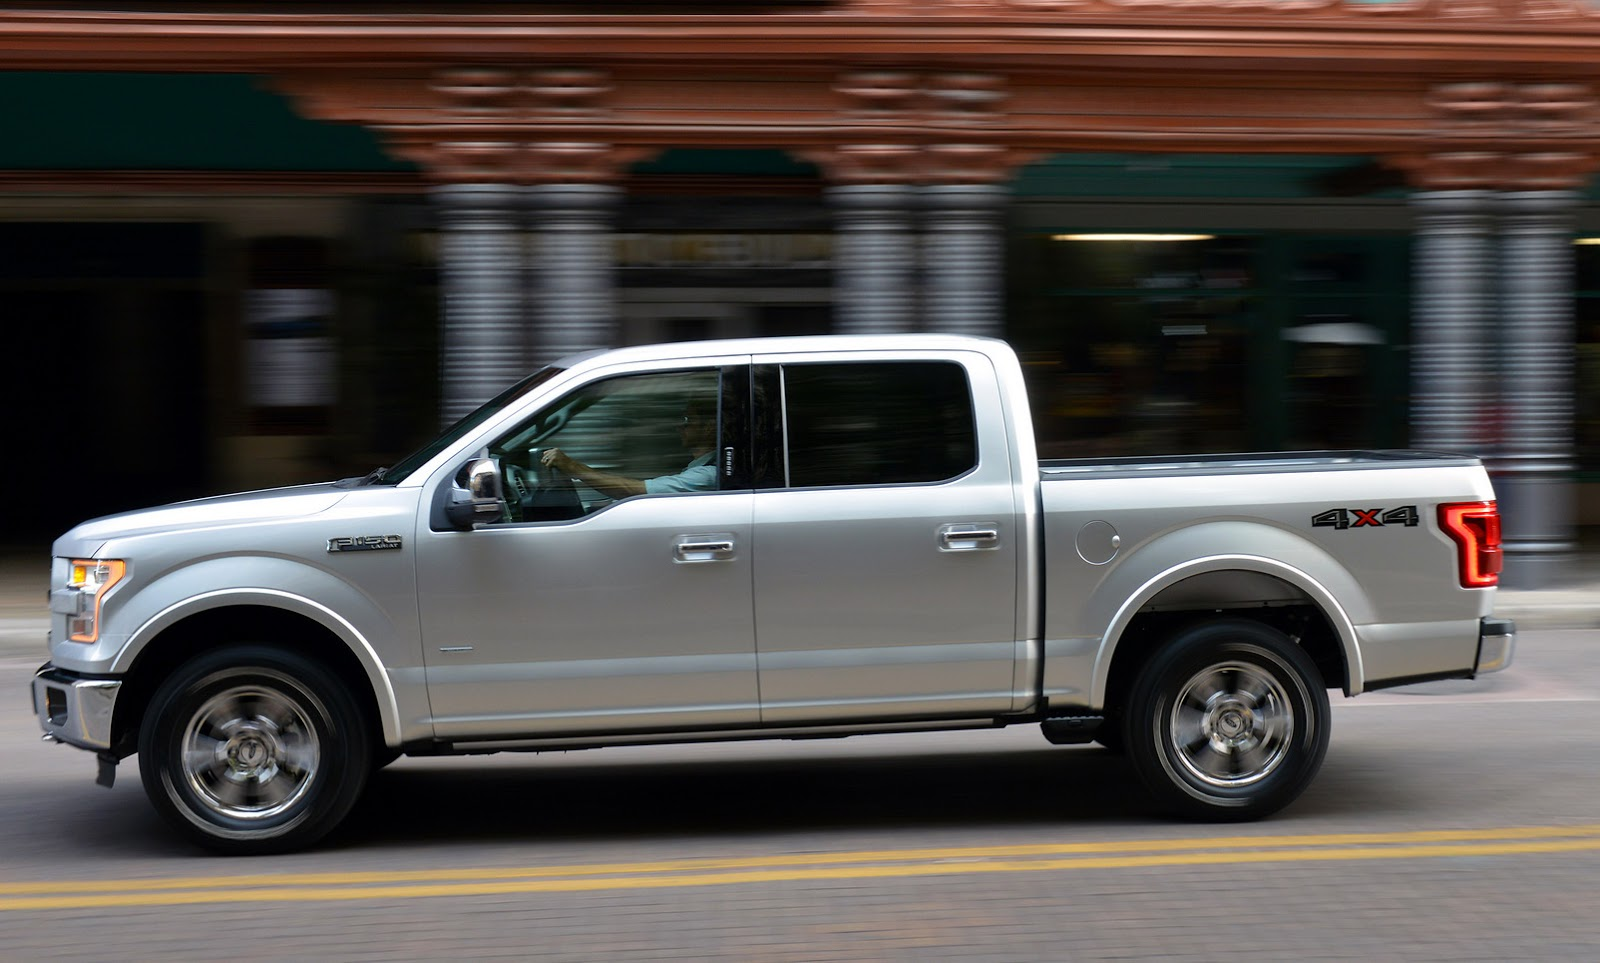 U Spy: Is There Anything Different About These Ford F-150s?